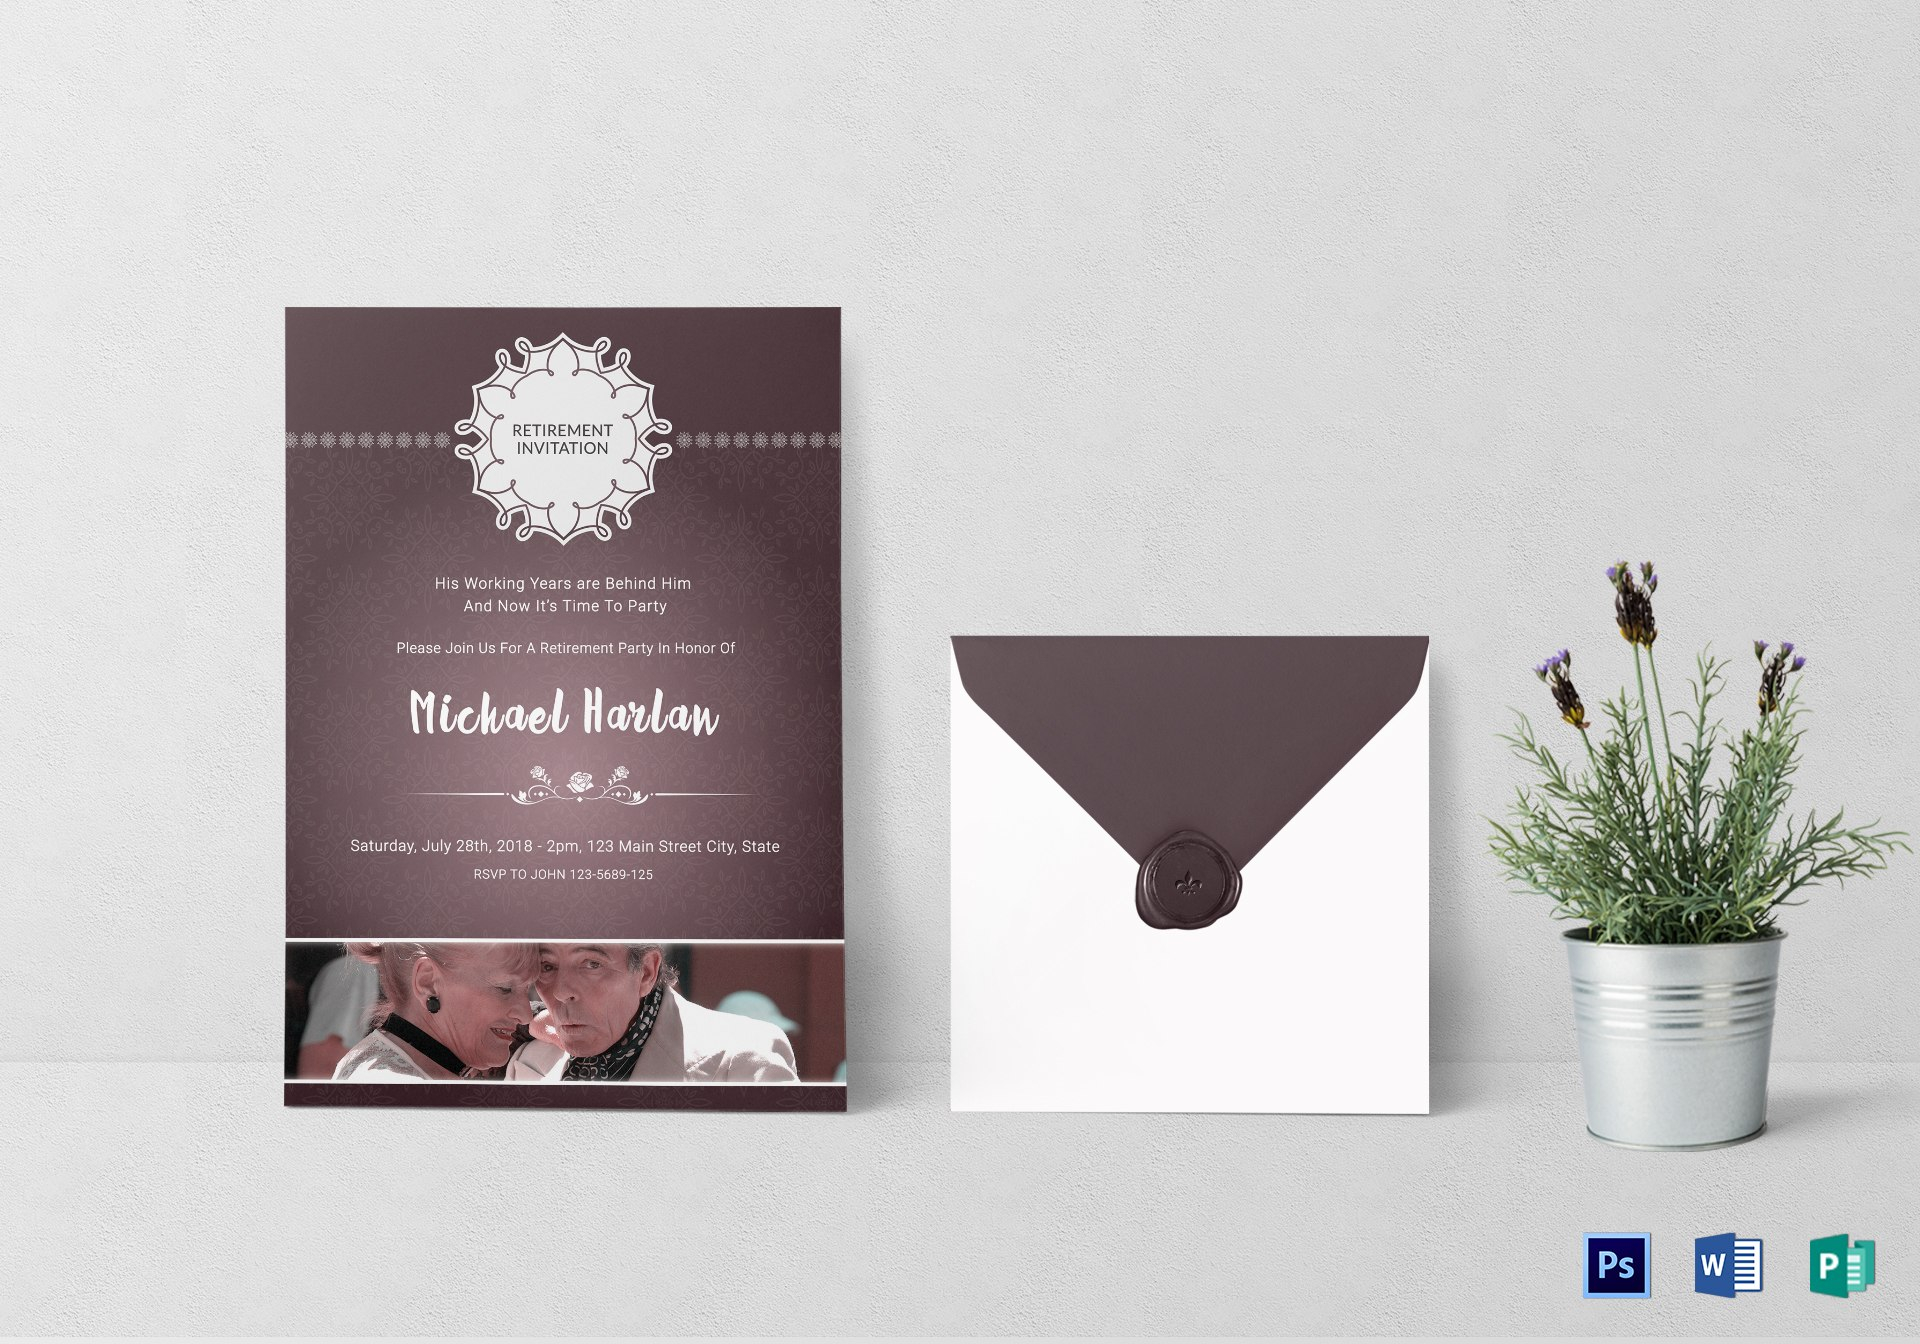 Delighted Retirement Party Invitation Card Design Template In Psd Within Retirement Card Template